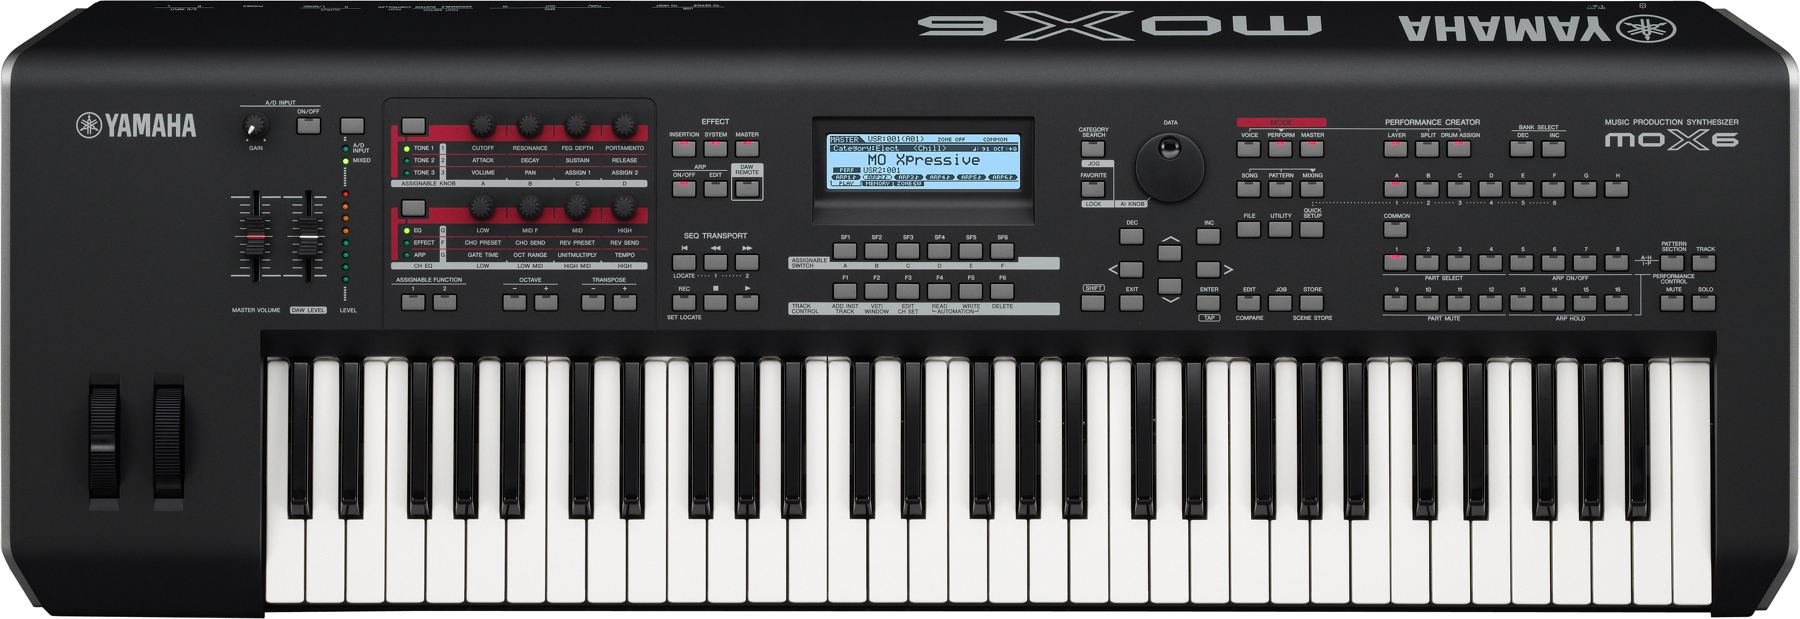 How Much Is Yamaha Motif Xs Price